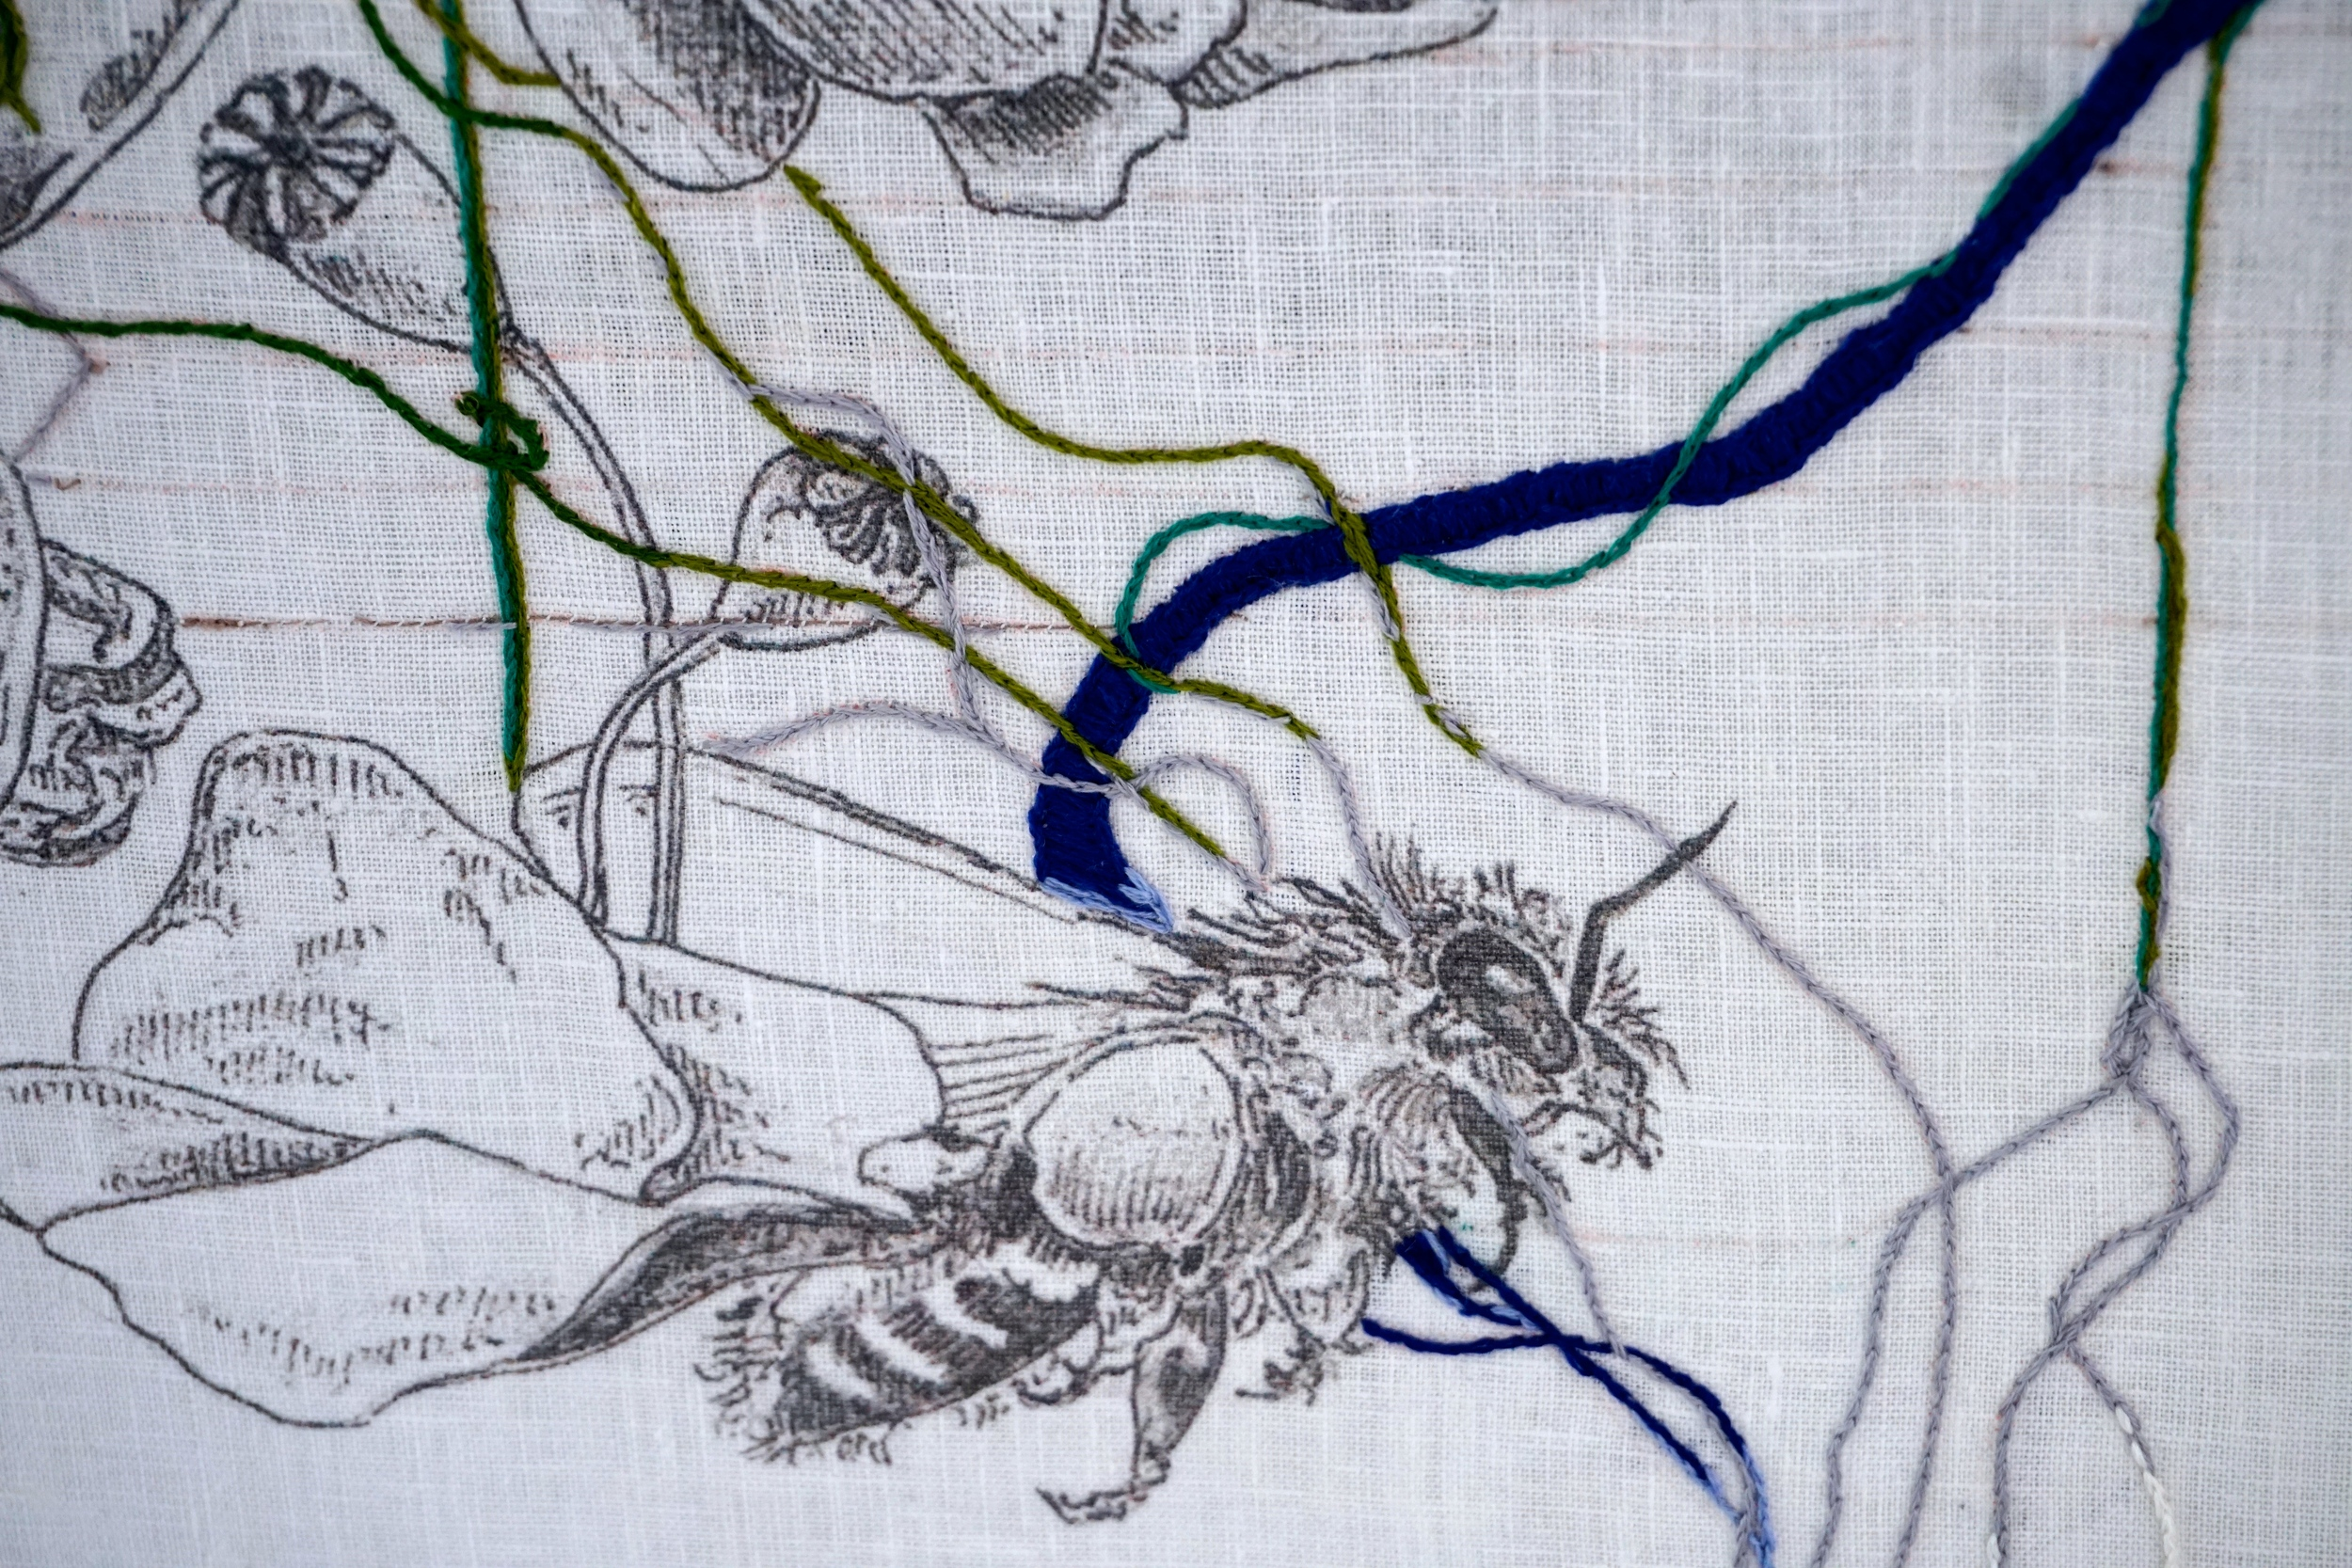 String and Bone 2 (detail)